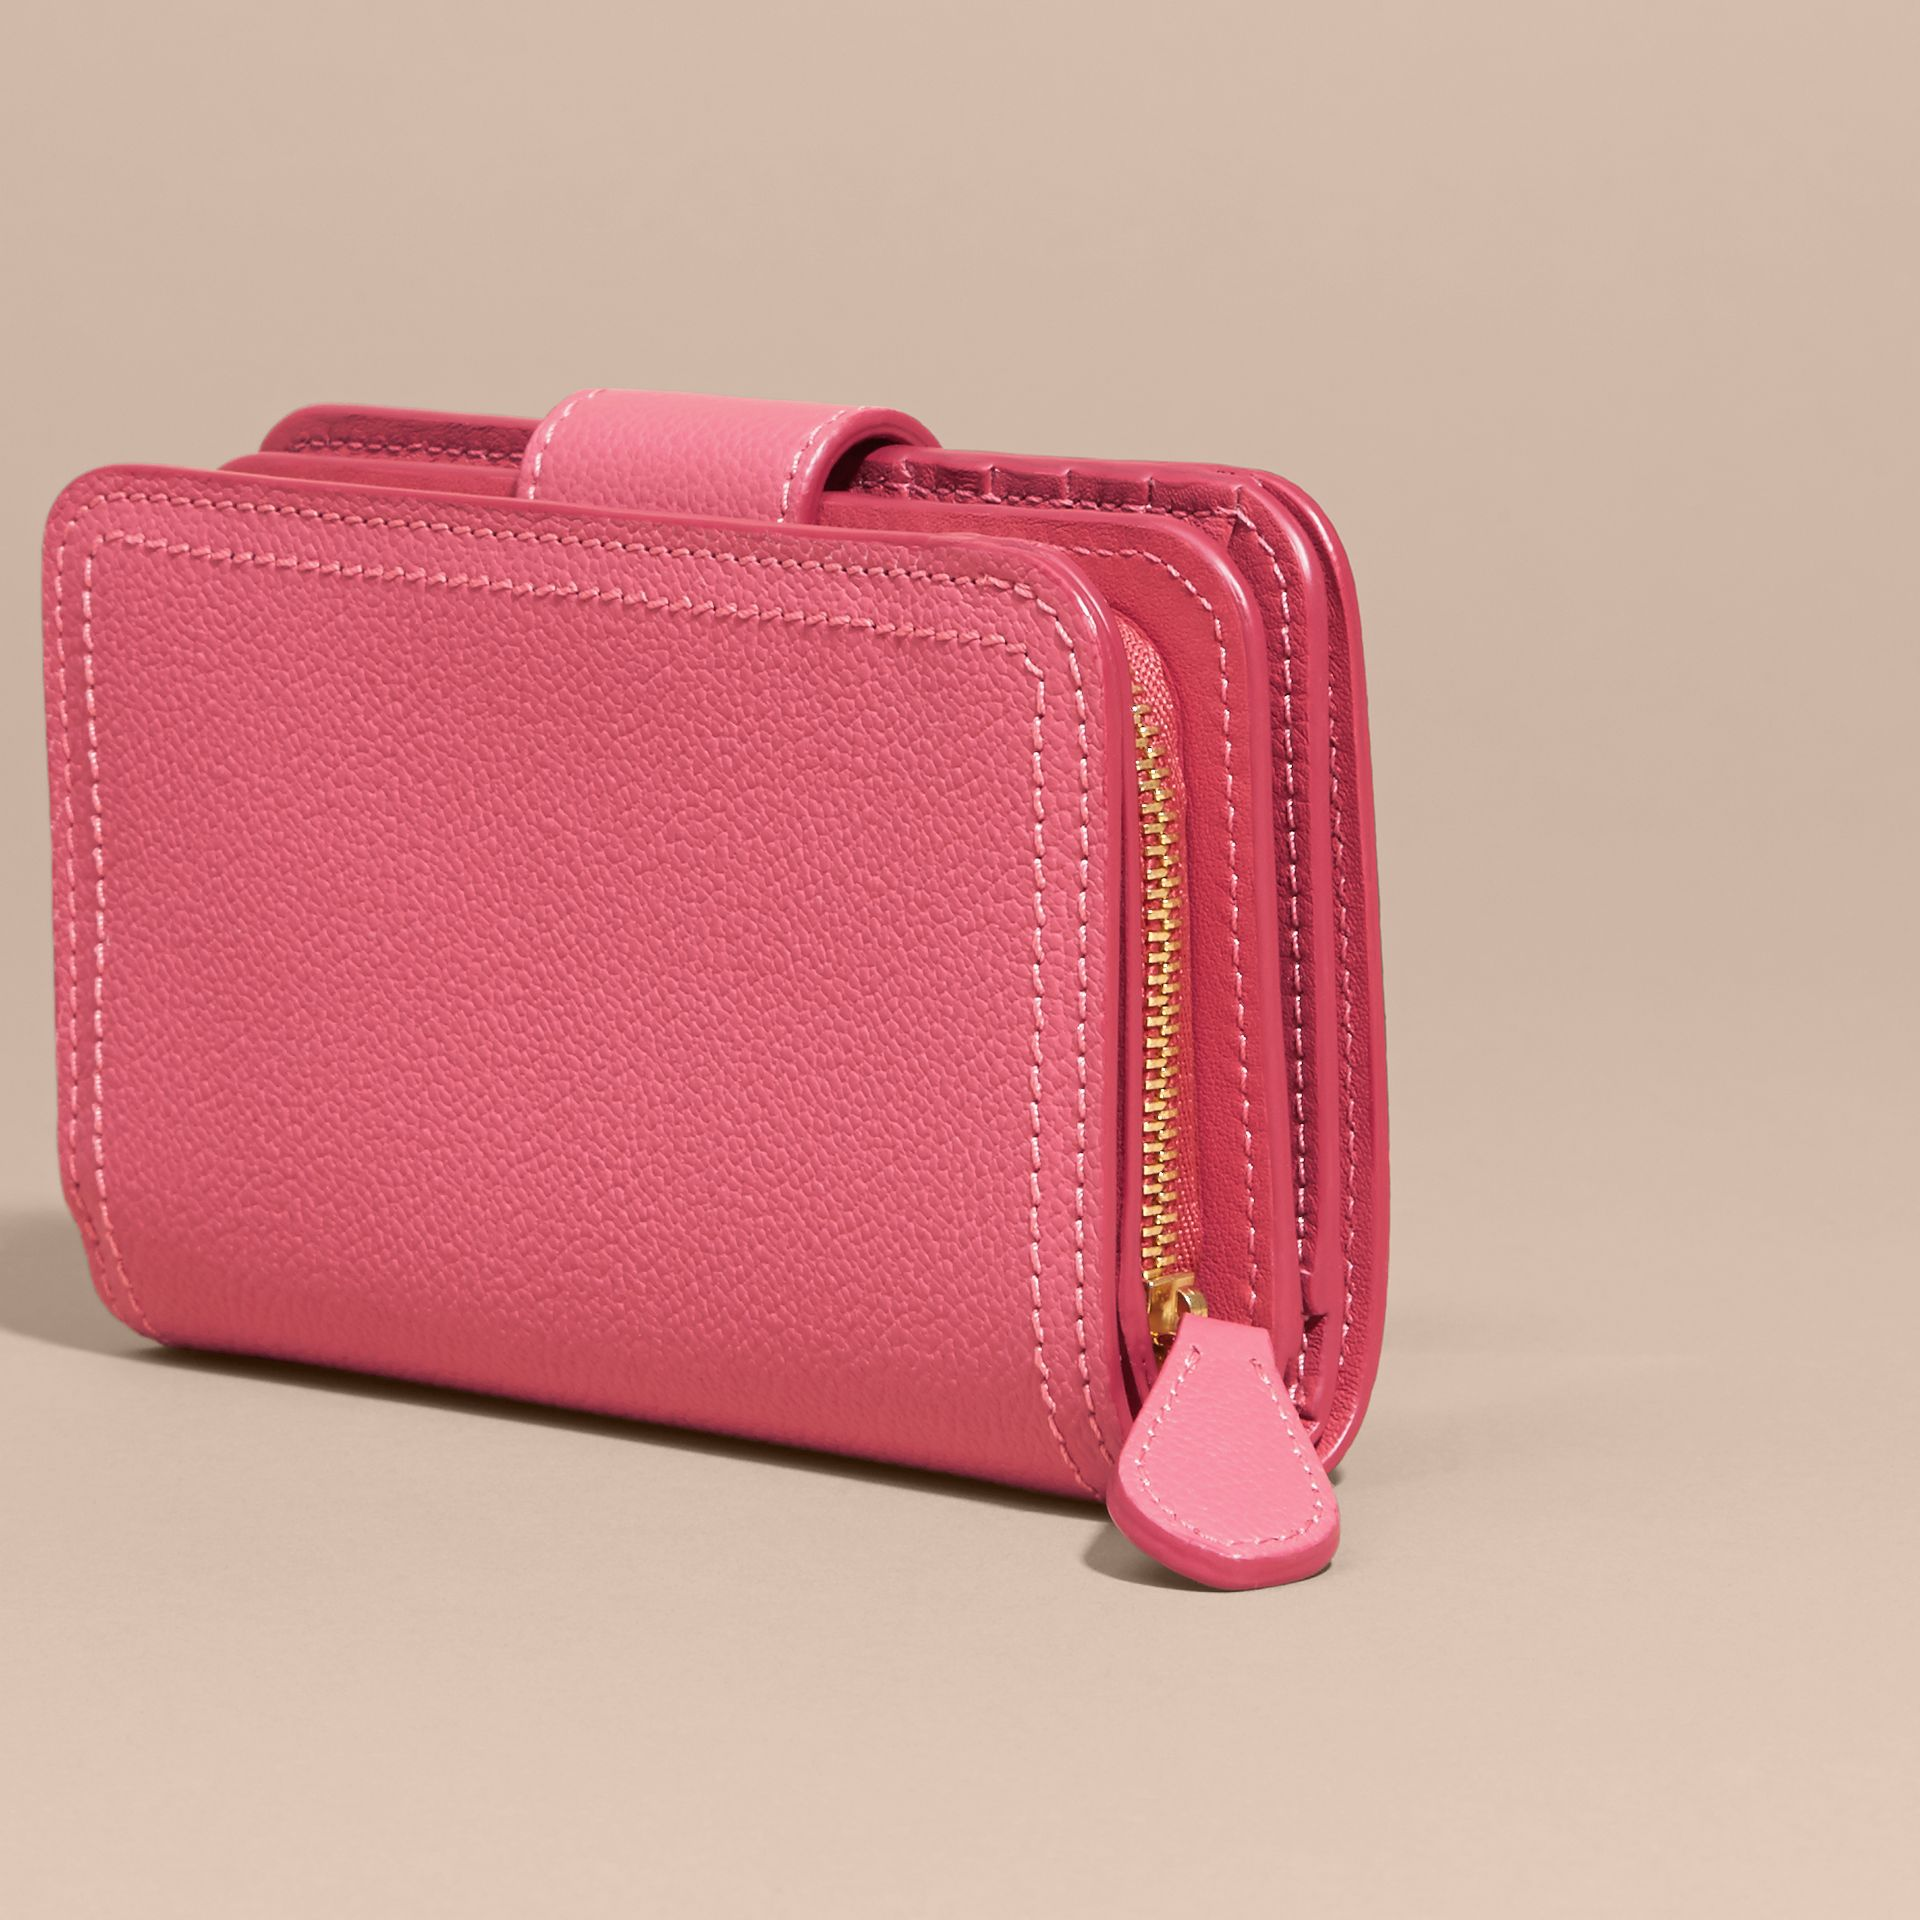 Pink azalea Buckle Detail Grainy Leather Wallet Pink Azalea - gallery image 4